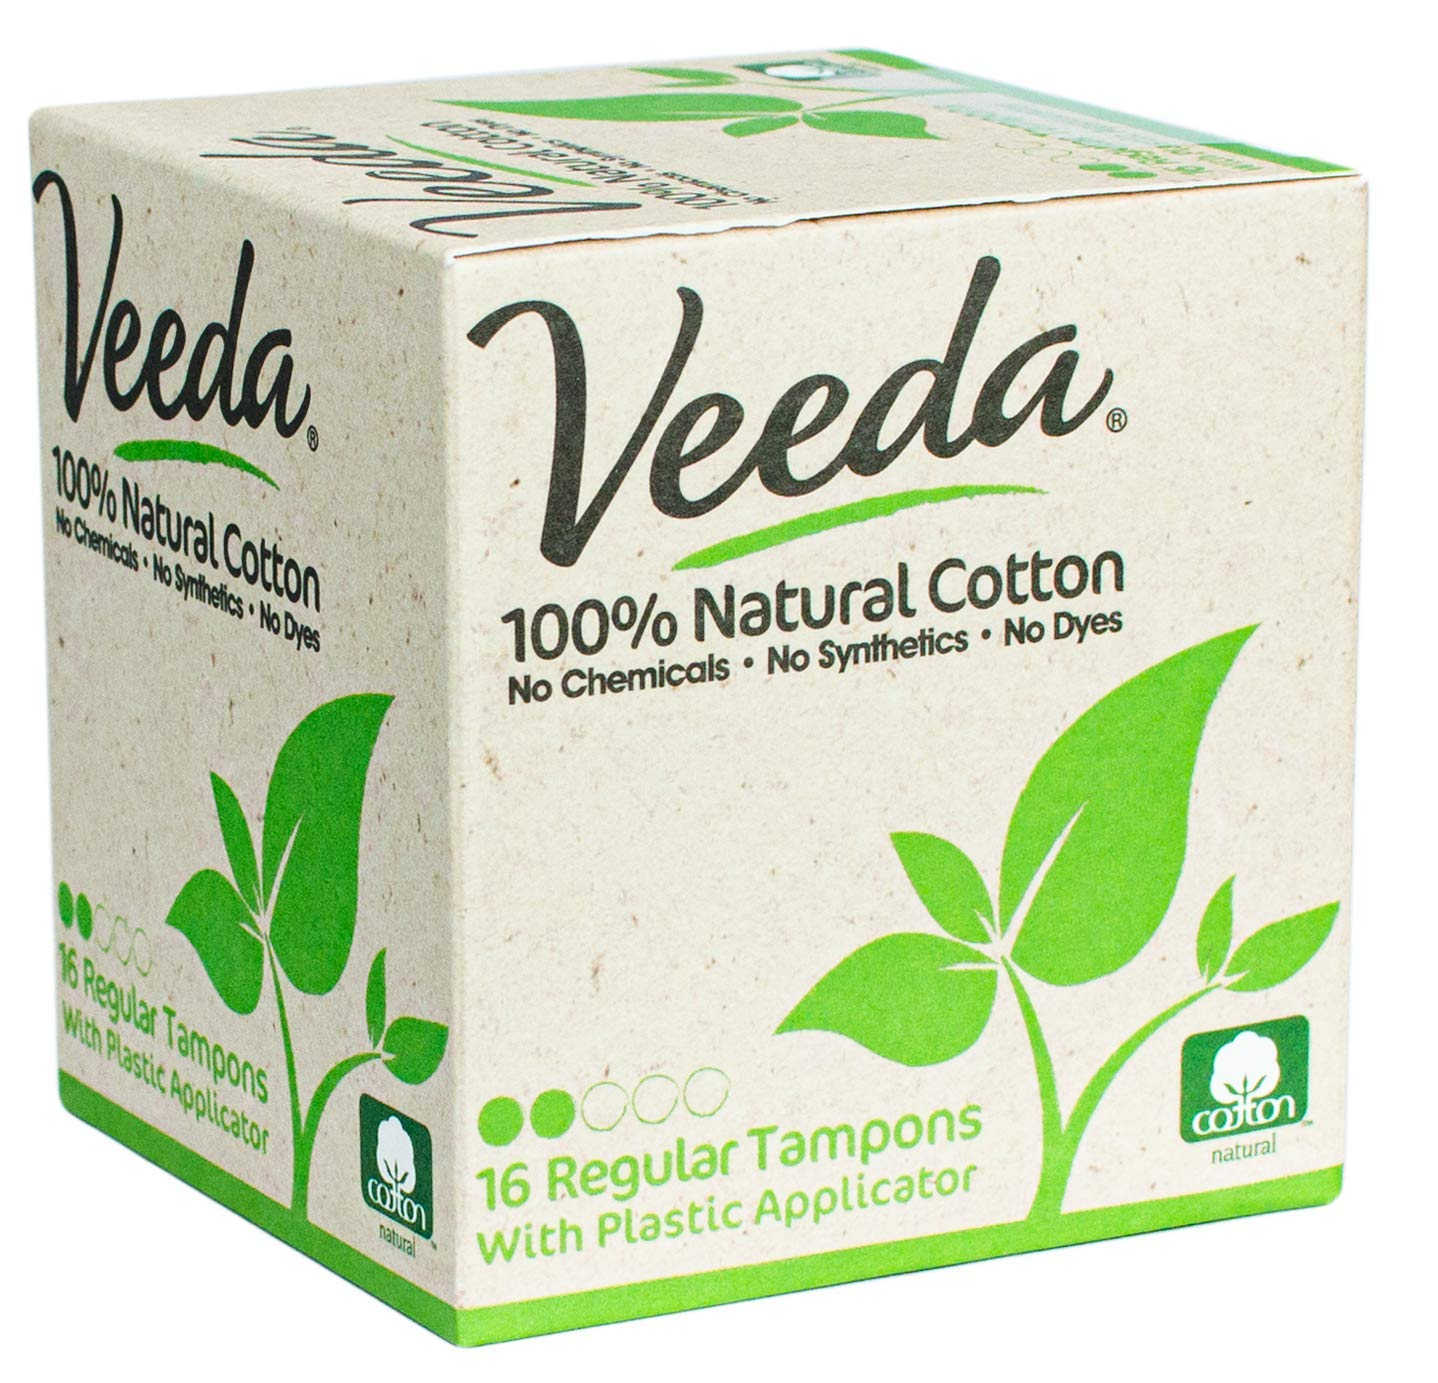 Veeda 100% Natural Cotton Compact BPA-Free Applicator Tampons Chlorine, Toxin and Pesticide Free, Regular, 16 Count